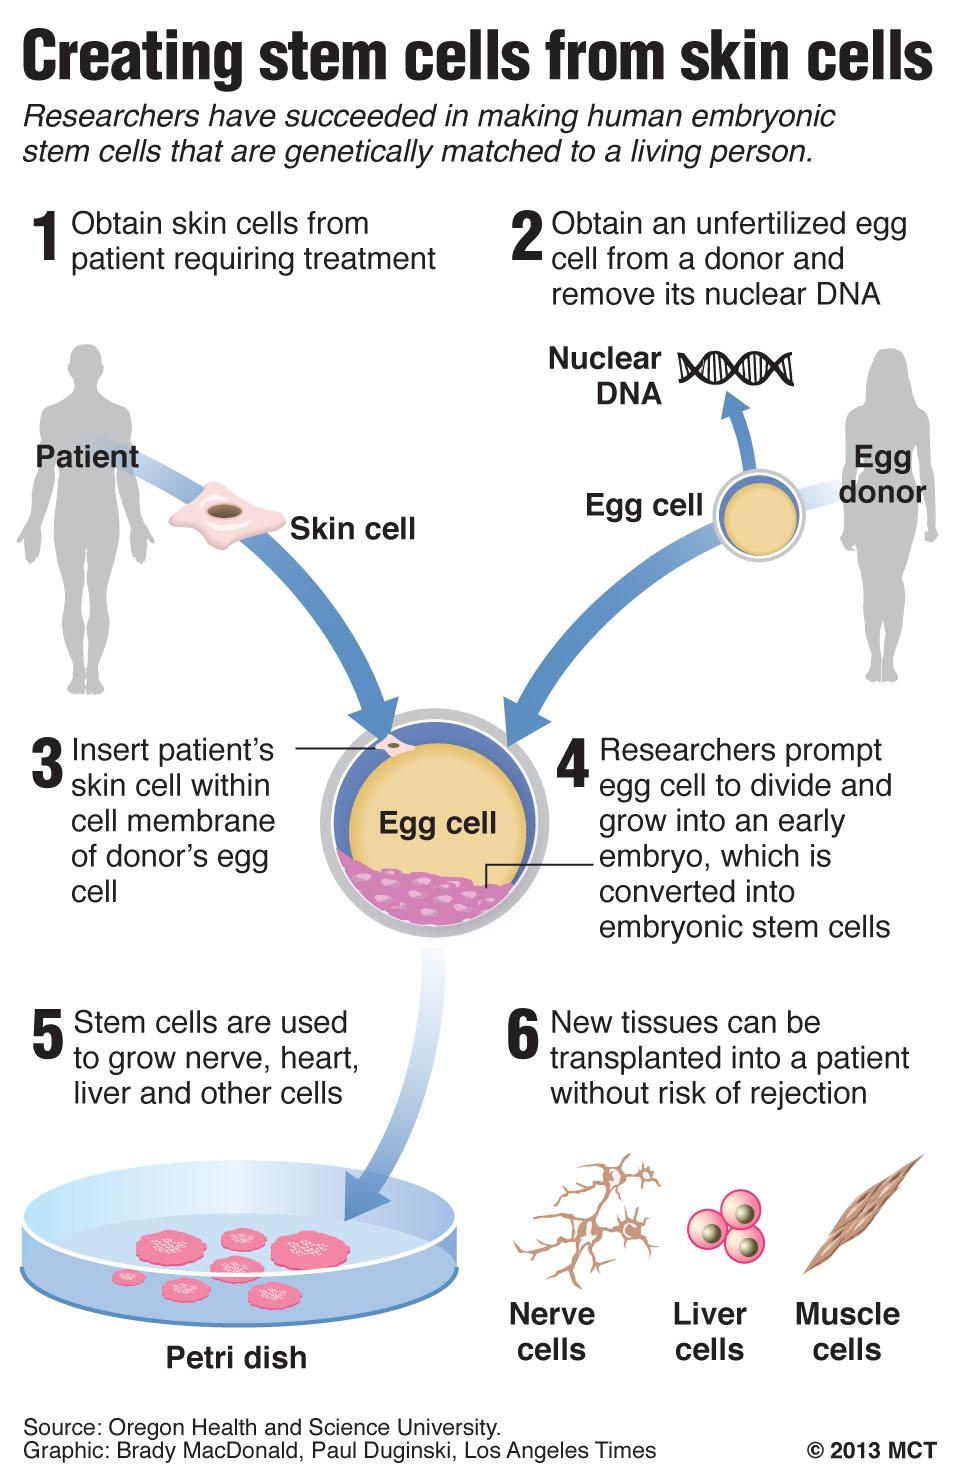 Graphic diagrams how researchers have created human stem cells from human skin cells; for the first time, scientists have created human embryos that are genetic copies of living people and used them to make stem cells. Los Angeles Times/MCT